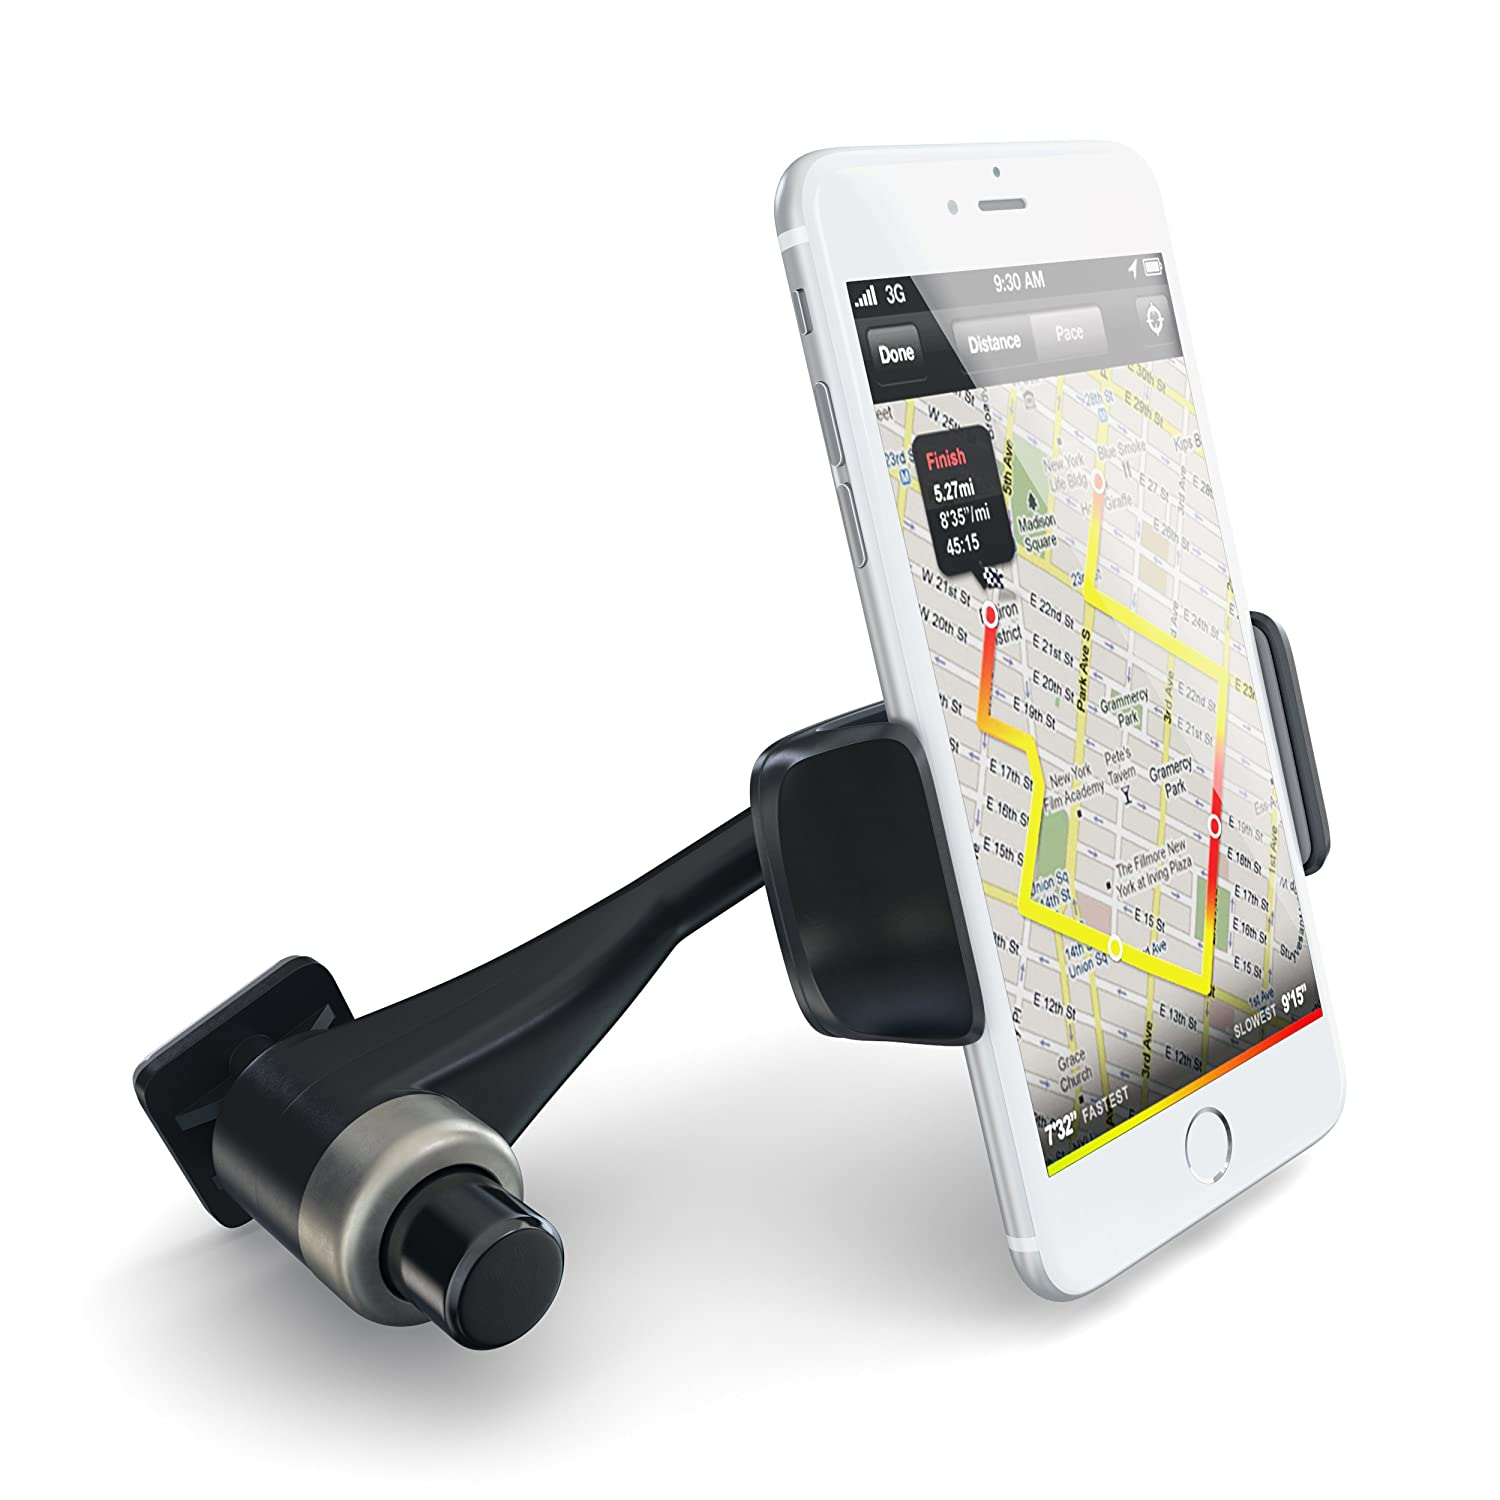 Found The Perfect Cell Phone Mount For The RDX. Pic Inside